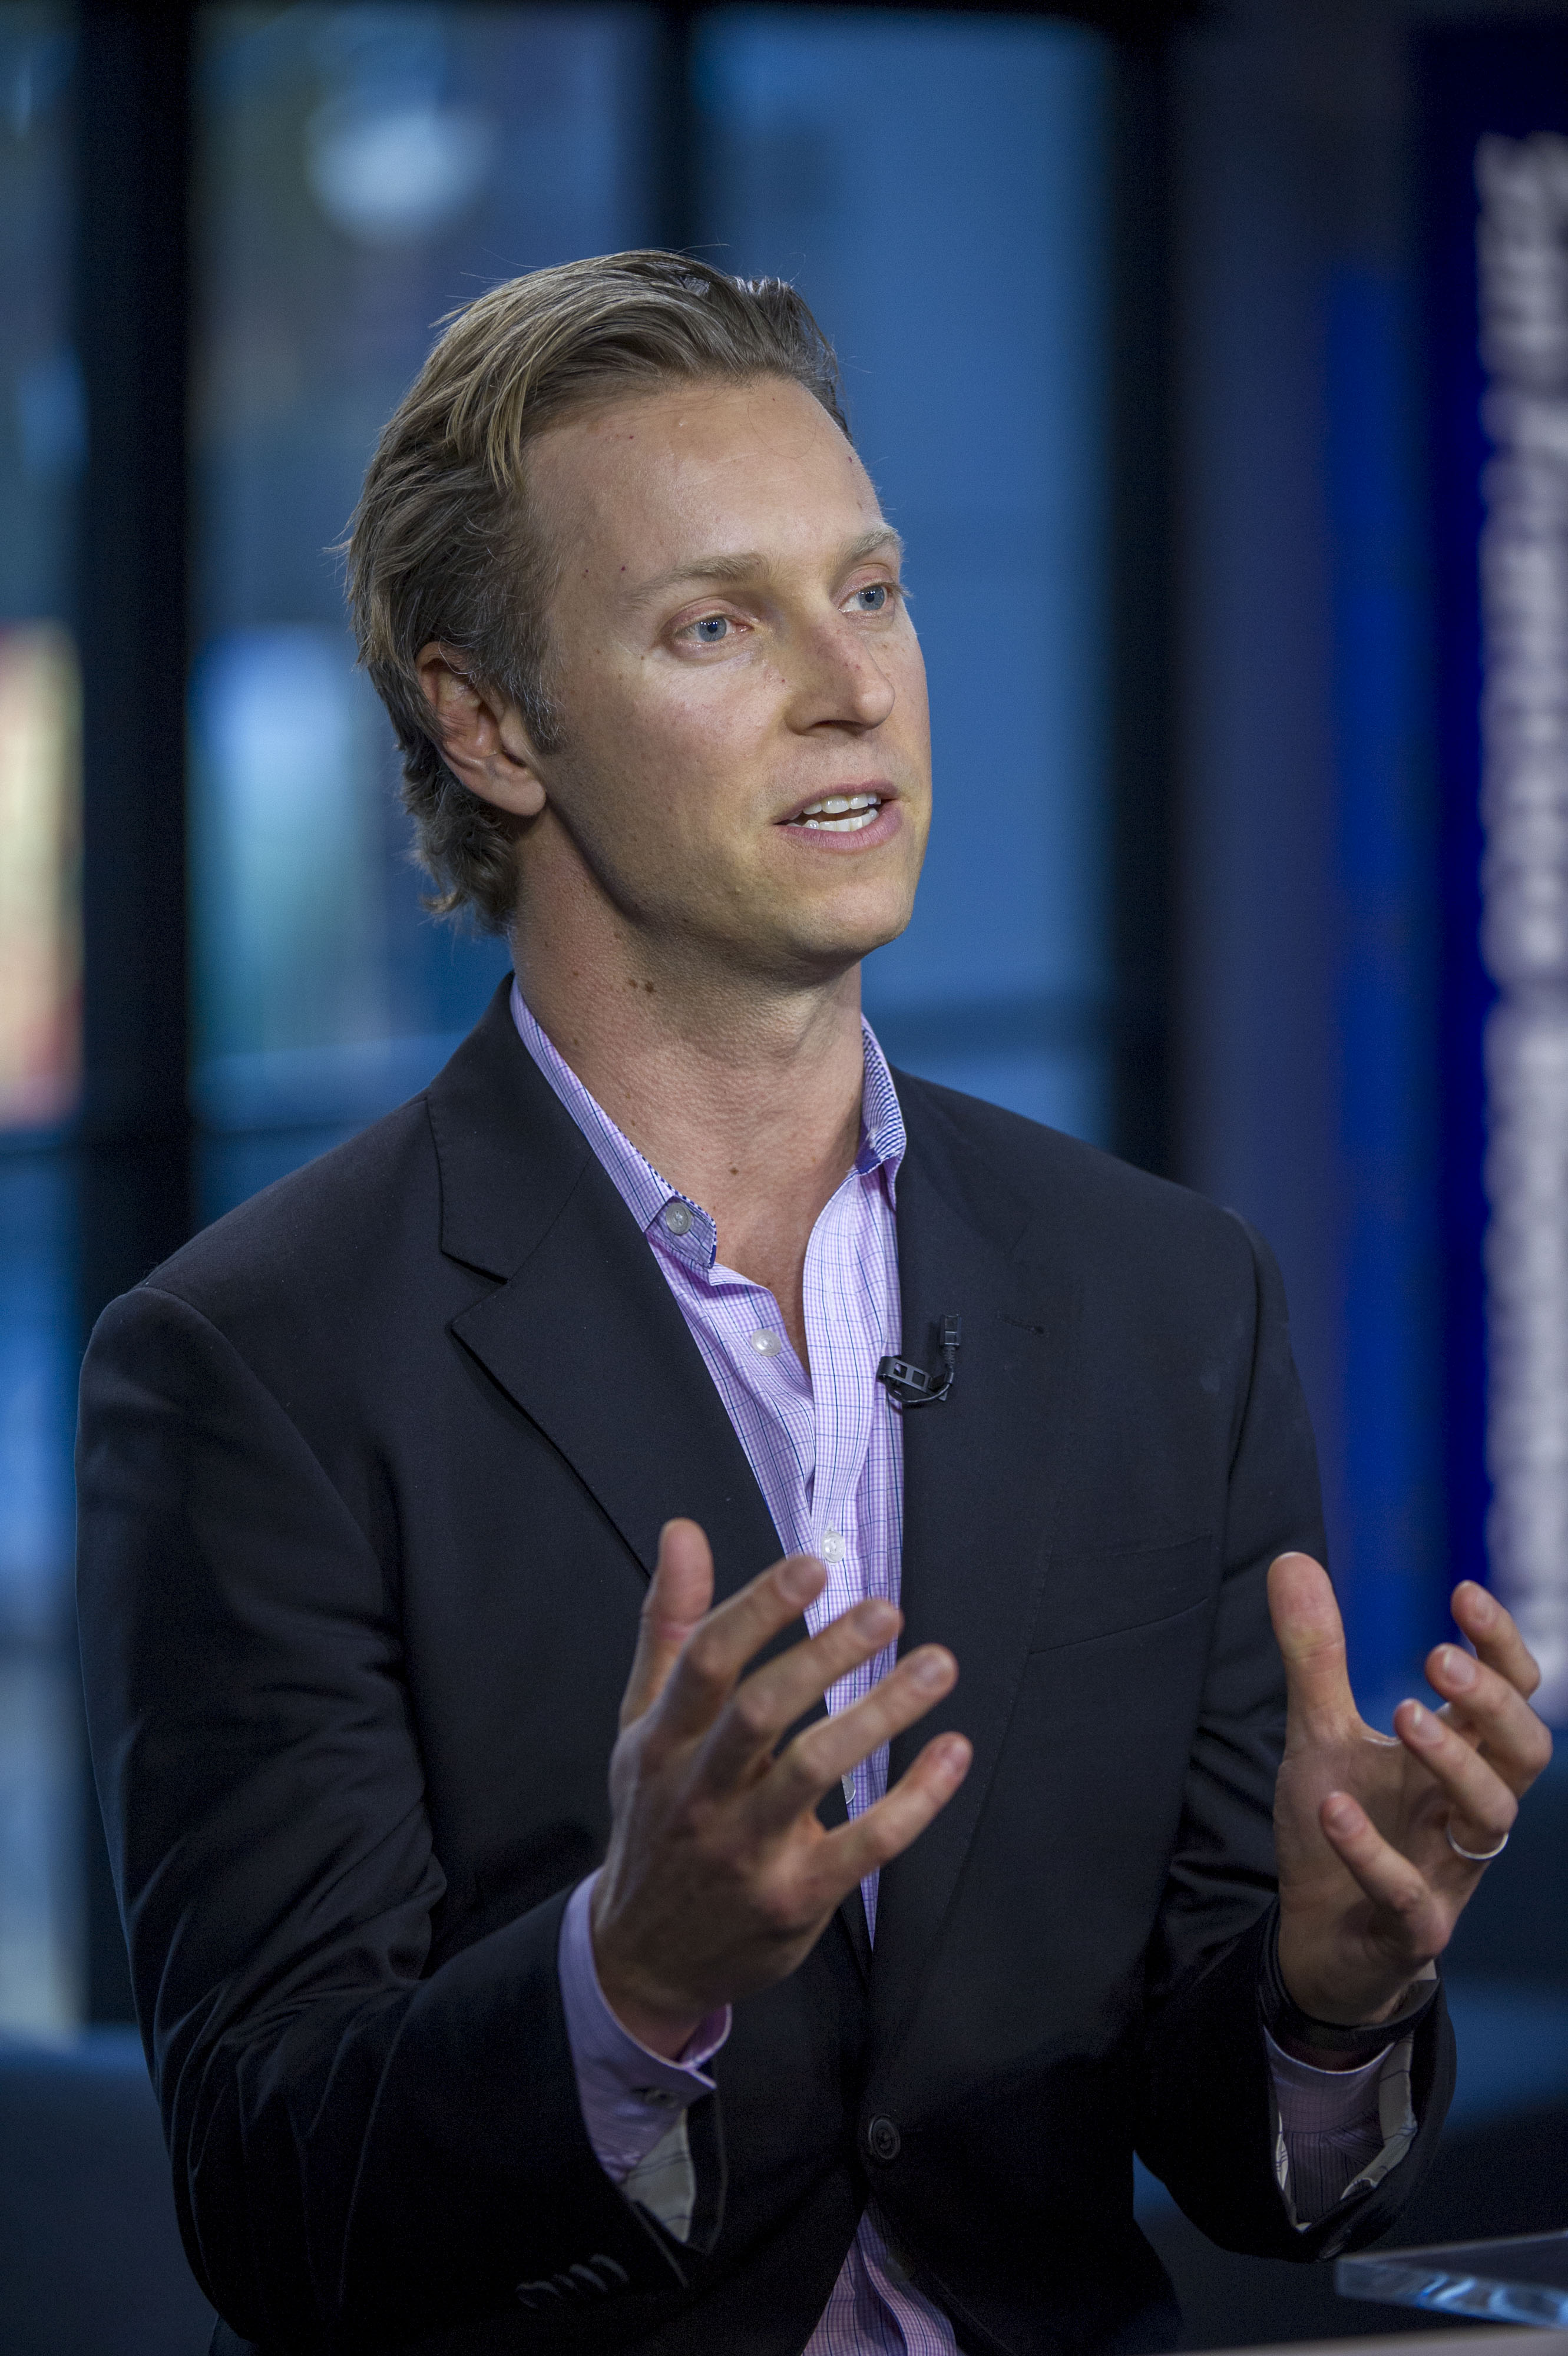 Sam Shank, chief executive officer and co-founder of HotelTonight Inc., speaks during a Bloomberg West Television interview in San Francisco, California on Jan. 2, 2014.